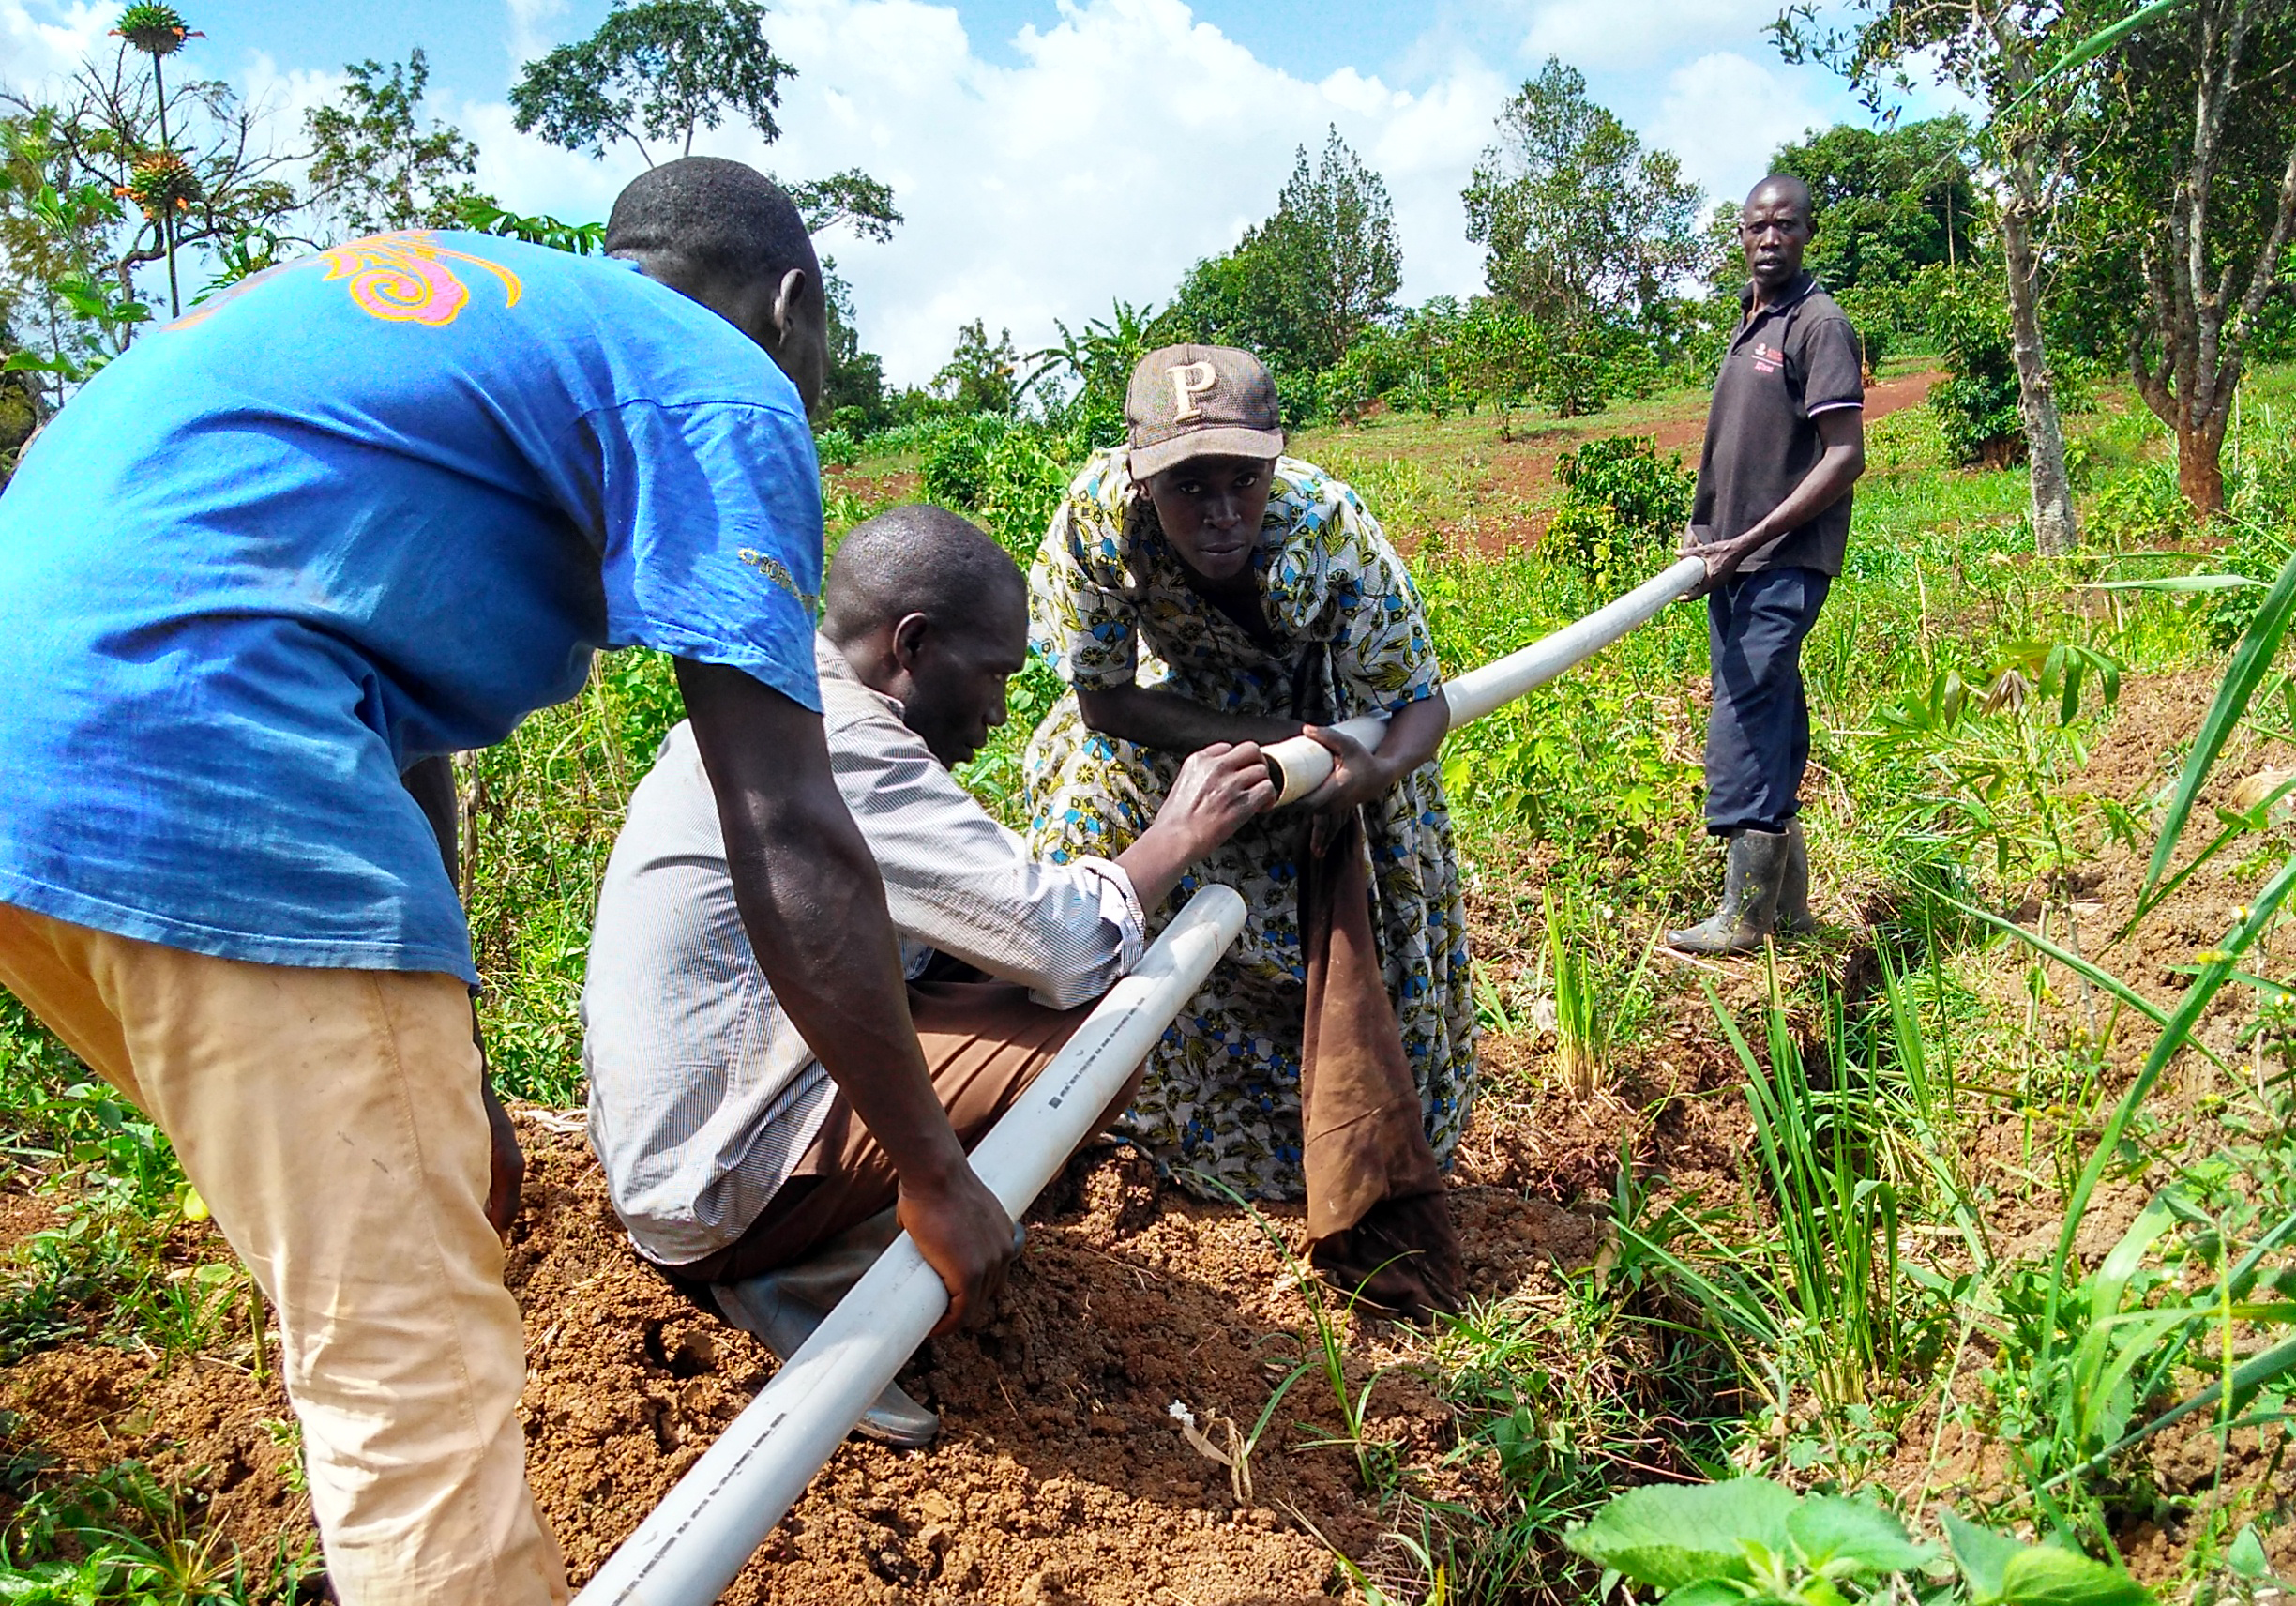 Young men work together to connect irrigation pipe in farm field.